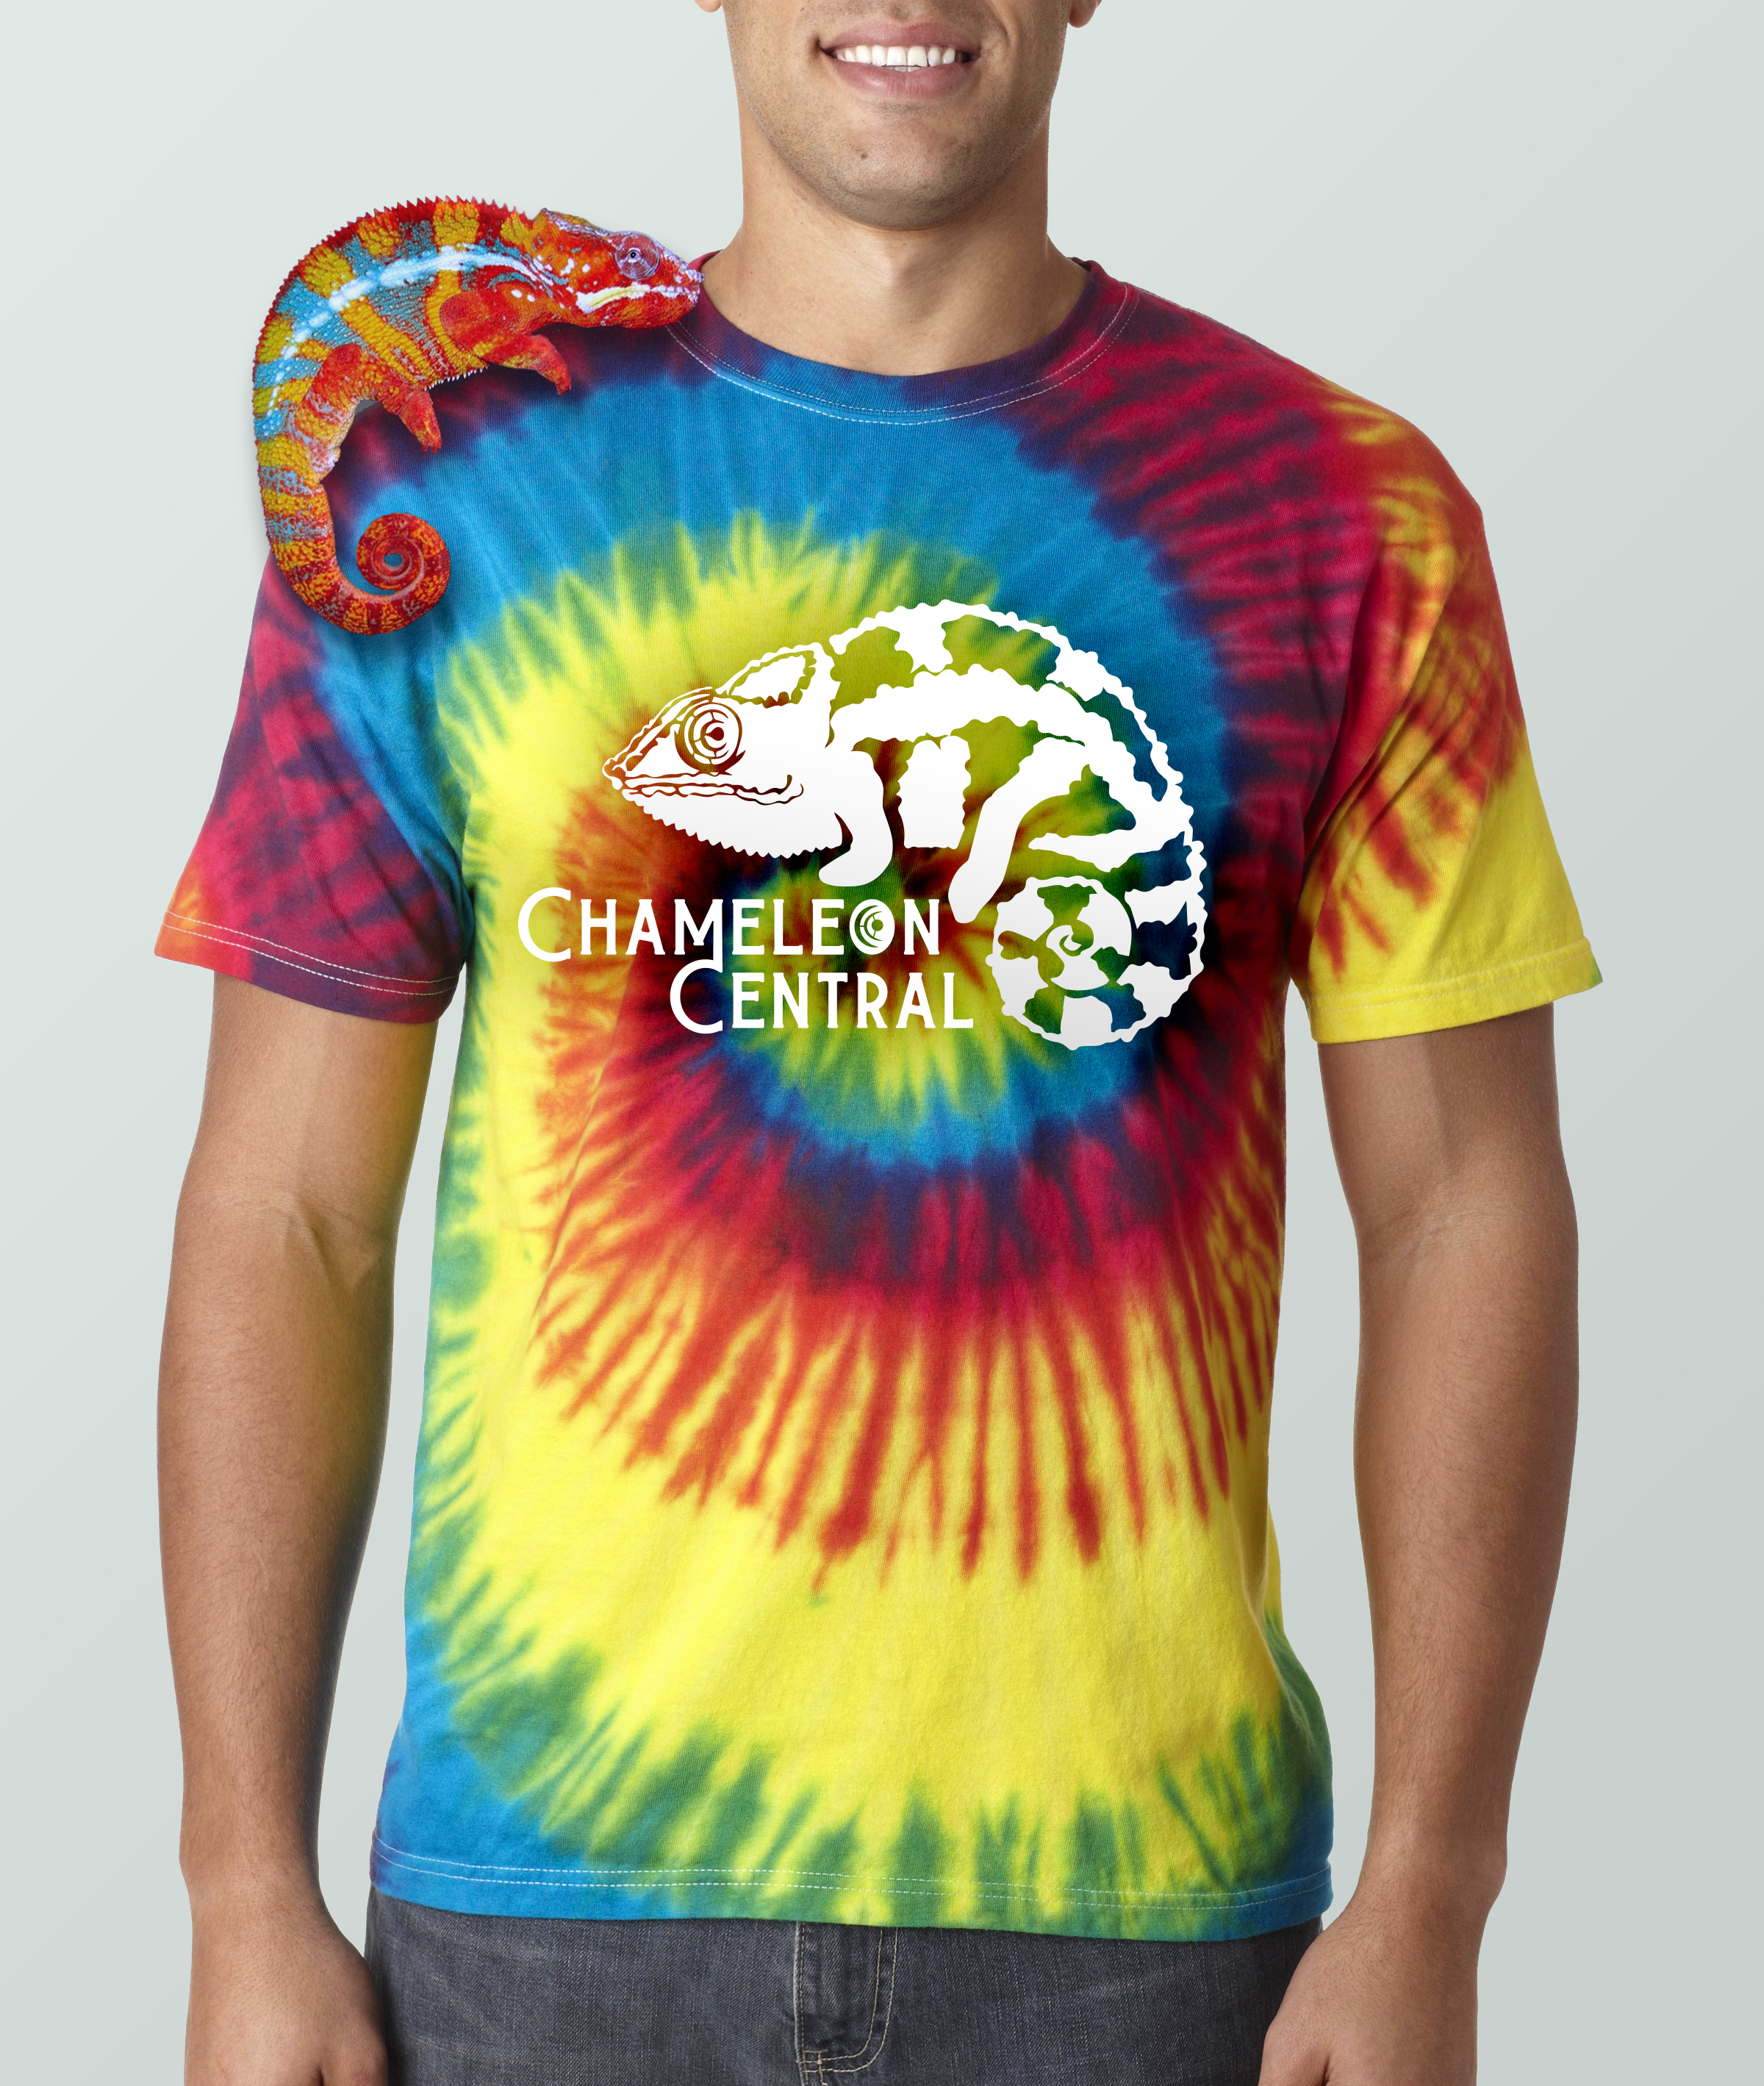 Chameleon Central Tie Dye Shirt